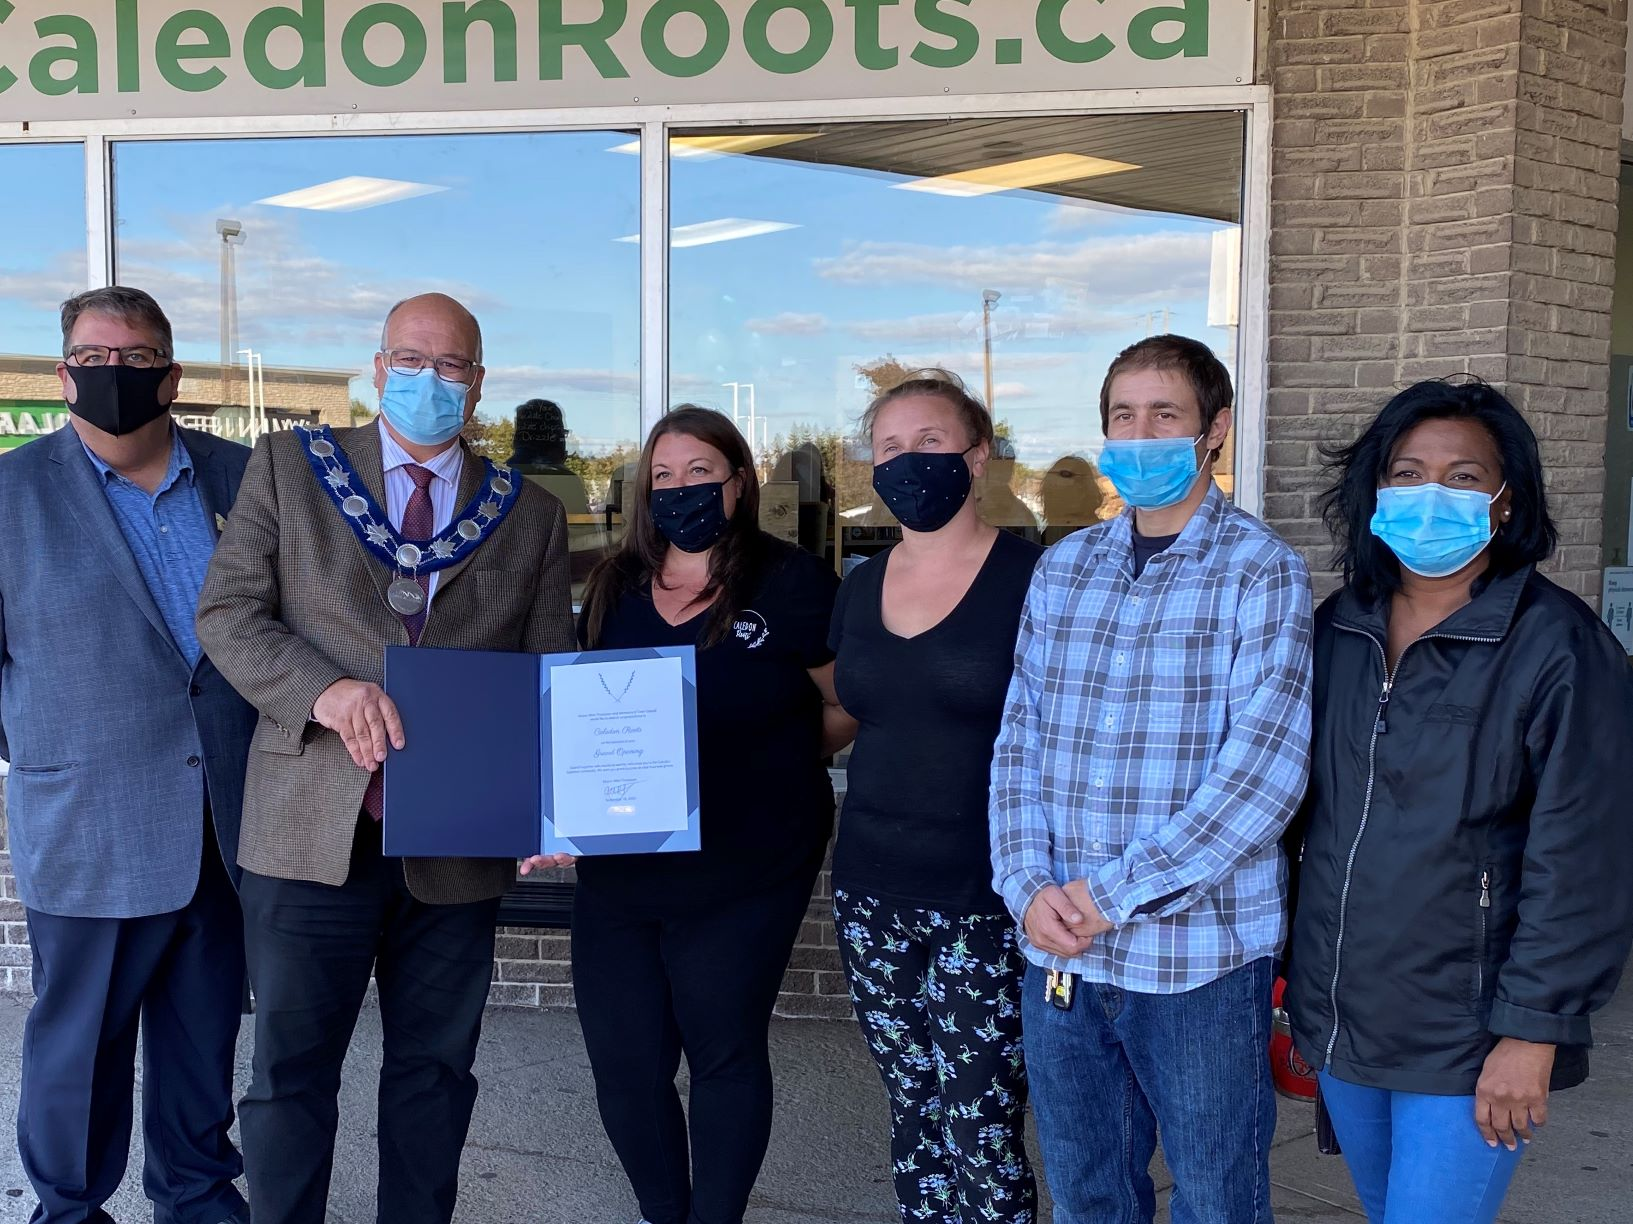 Caledon Roots grand opening